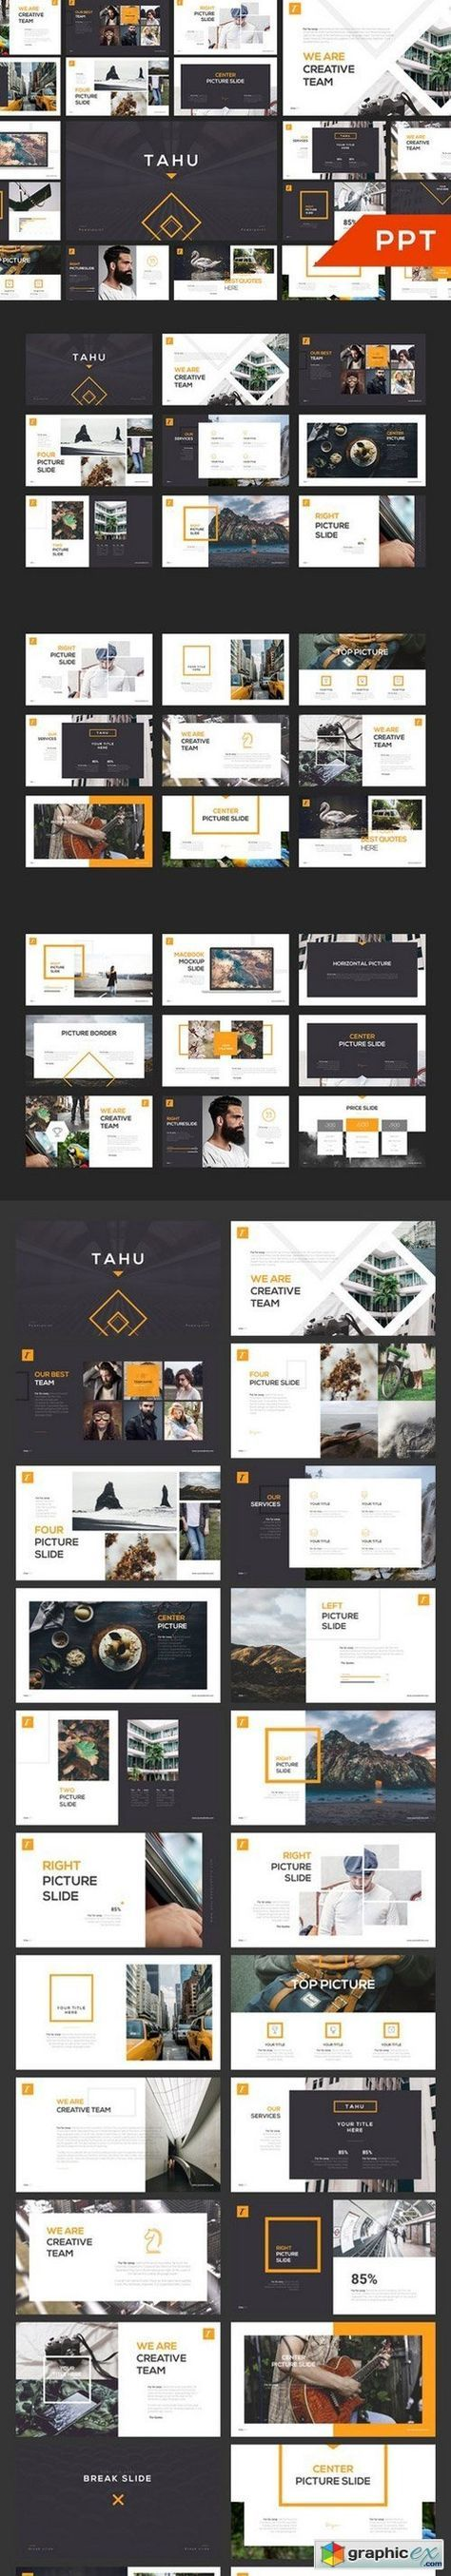 TAHU PowerPoint Template